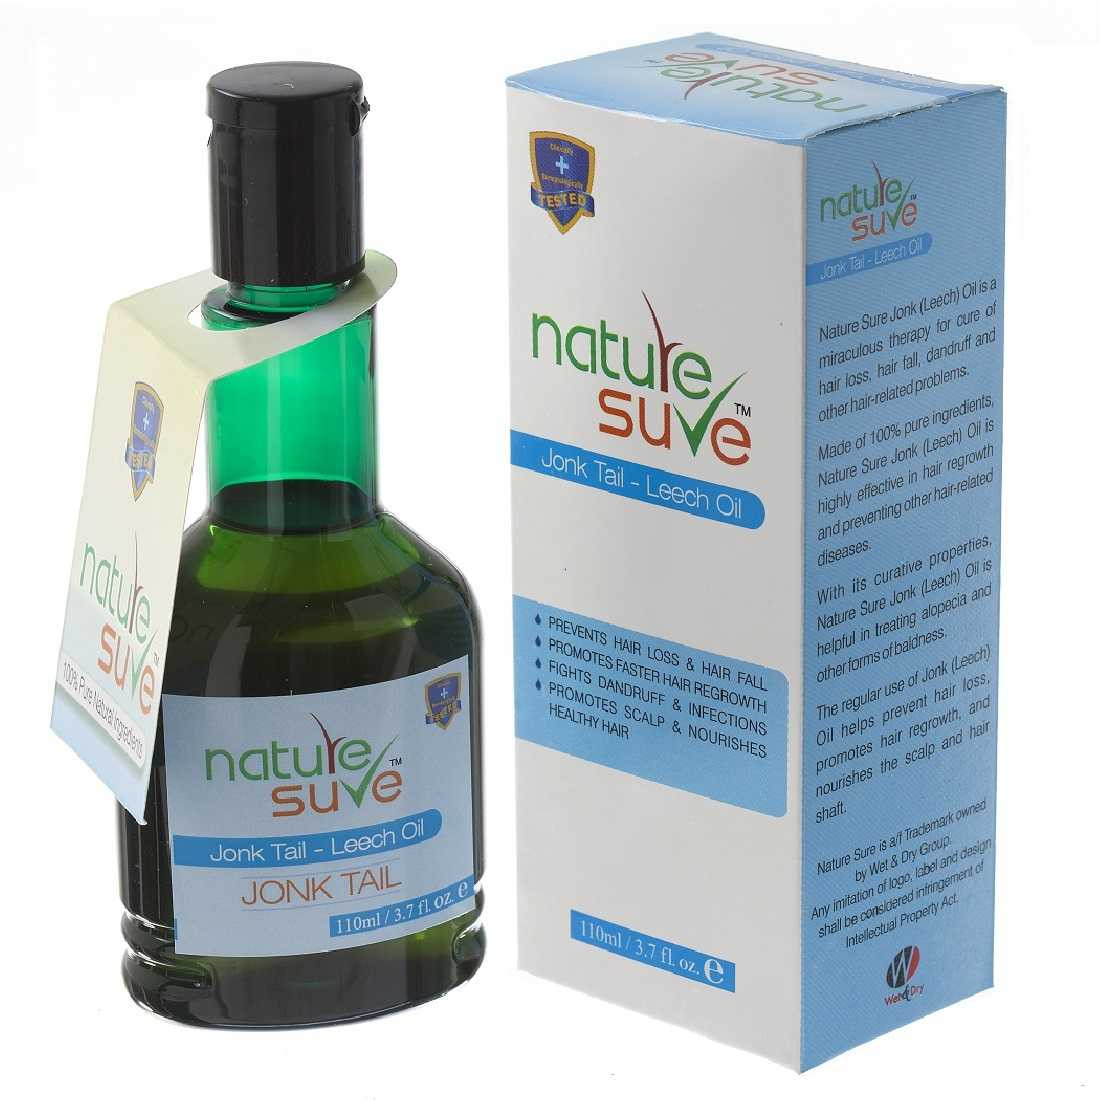 Nature Sure™ Jonk Tail (Leech Oil) 110ml – for Hair Problems in Men and Women